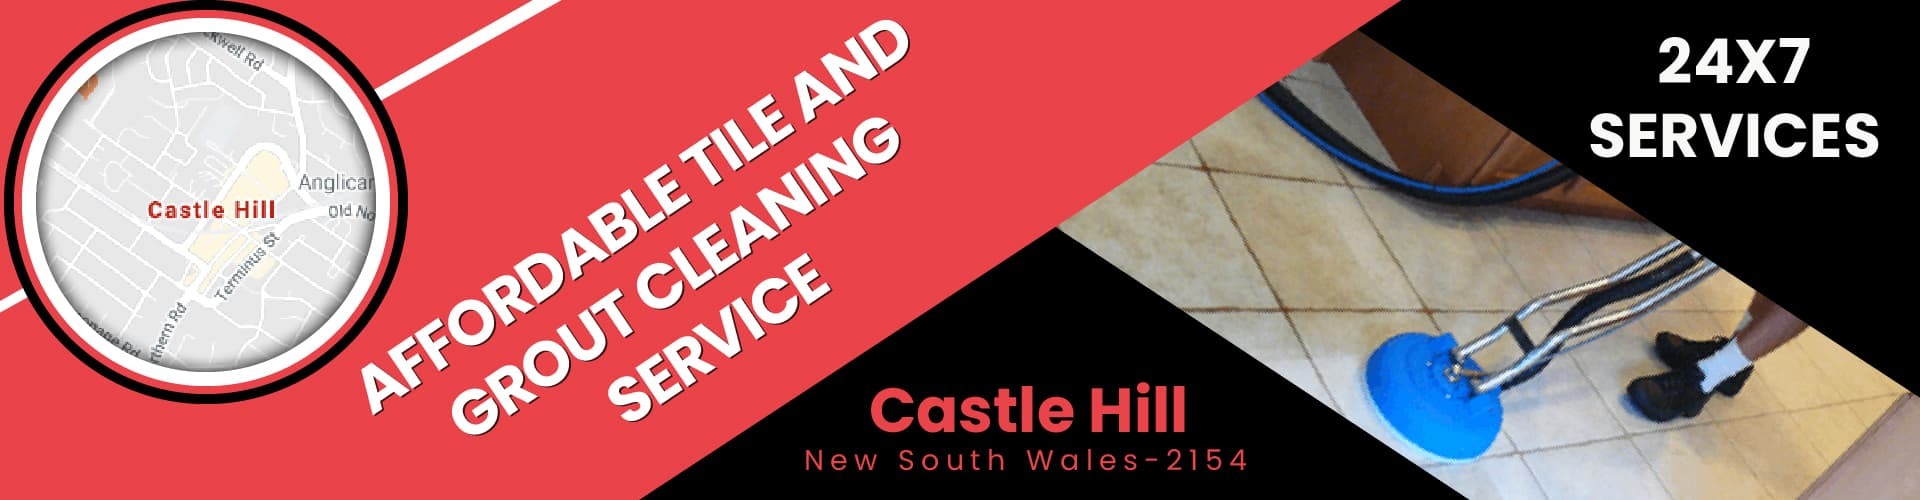 Tile And Grout Cleaning Castle Hill 0410 453 896 Tile